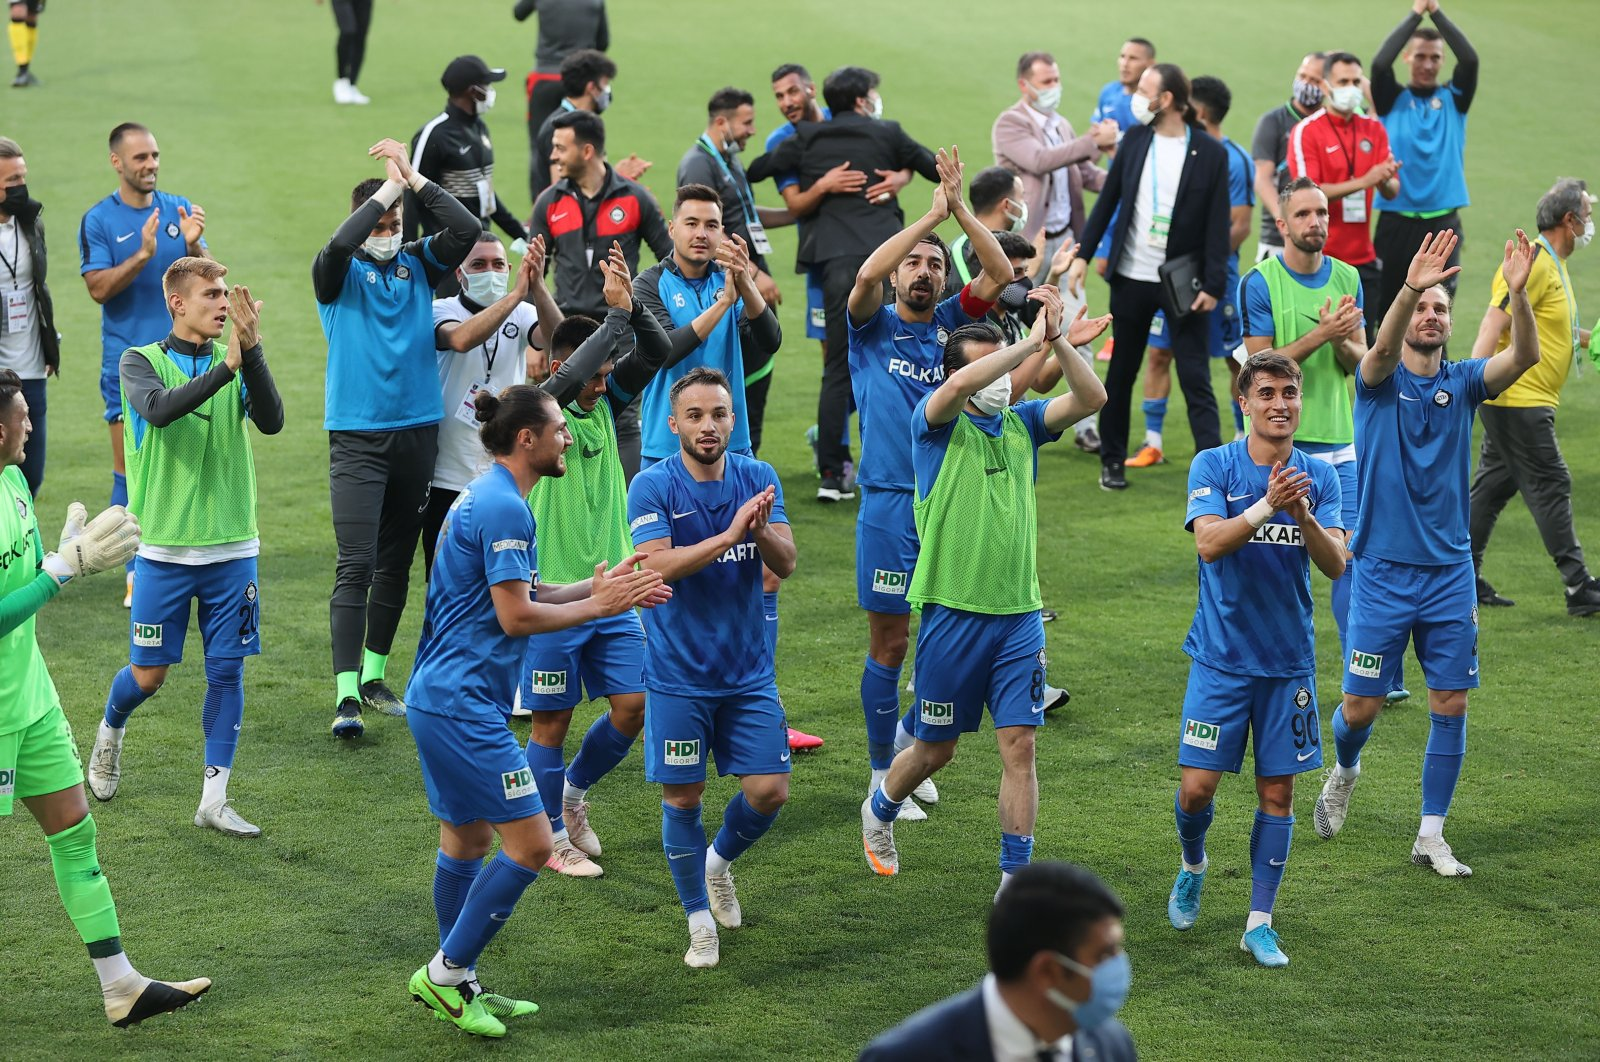 Altay players celebrate their victory against Istanbulspor following TFF 1. Lig playoff semifinal match in Istanbul, Turkey, May 23, 2021. (AA Photo)